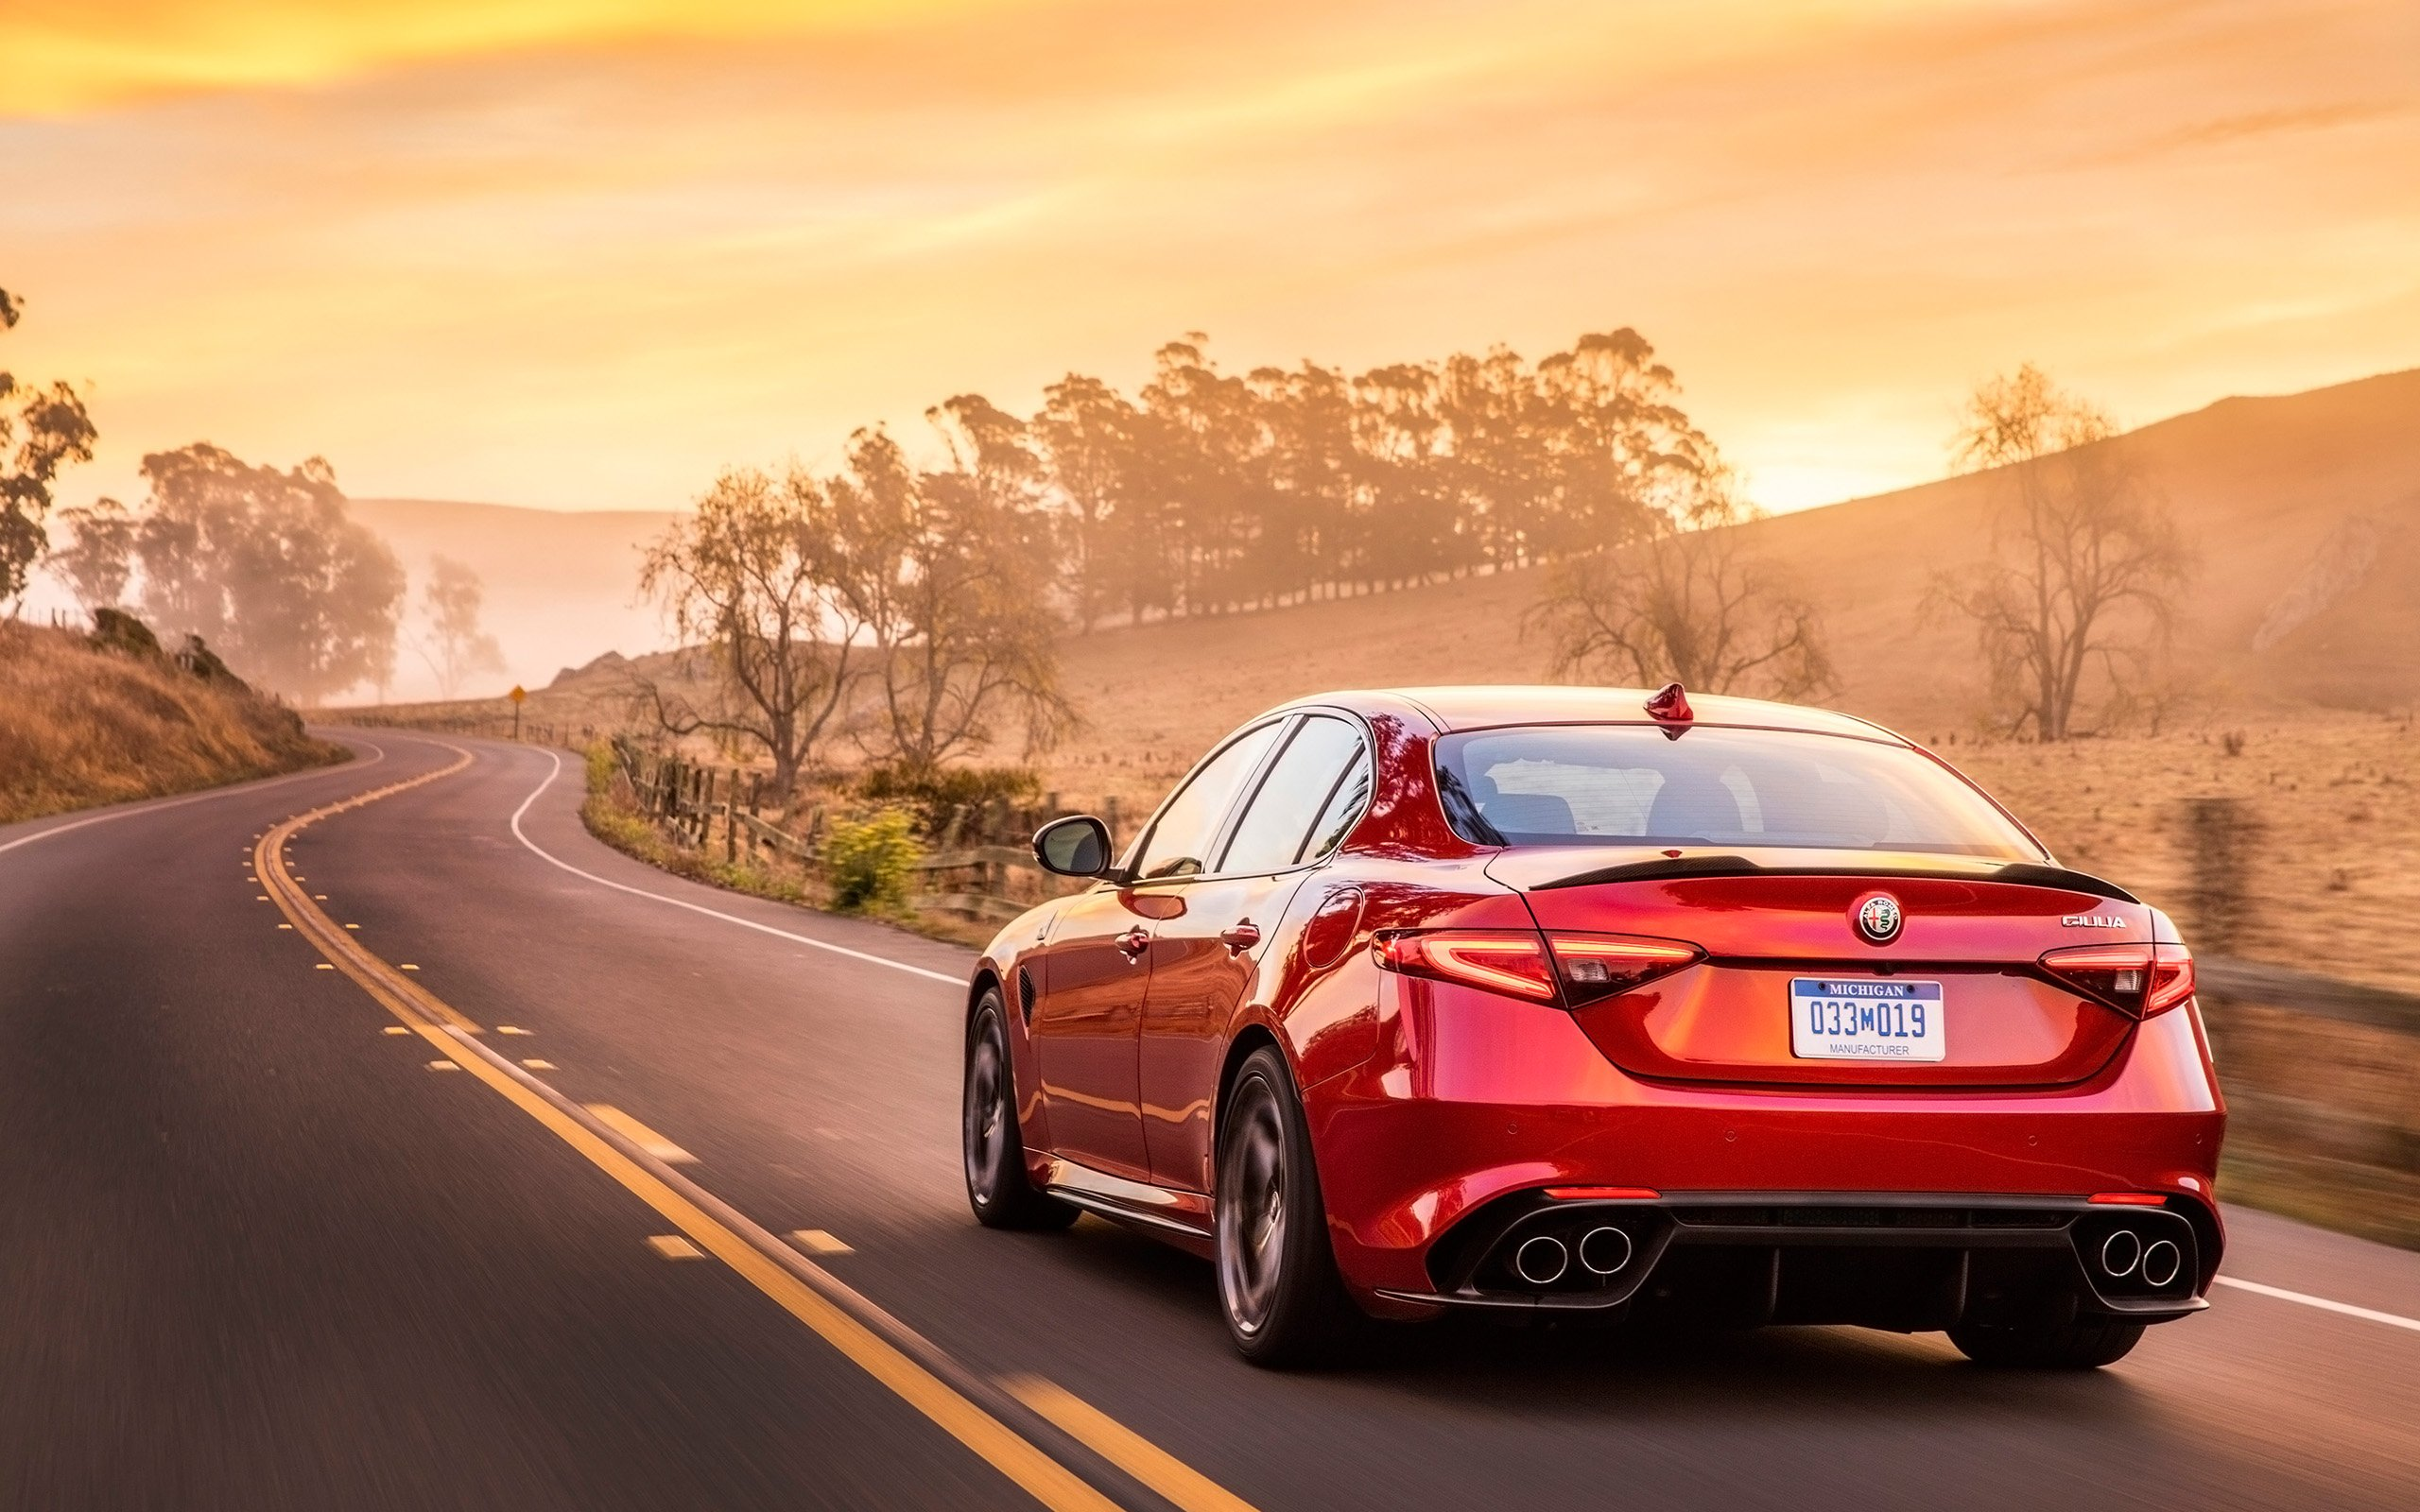 Alfa Romeo Giulia Wallpapers and Background Images   stmednet 2560x1600